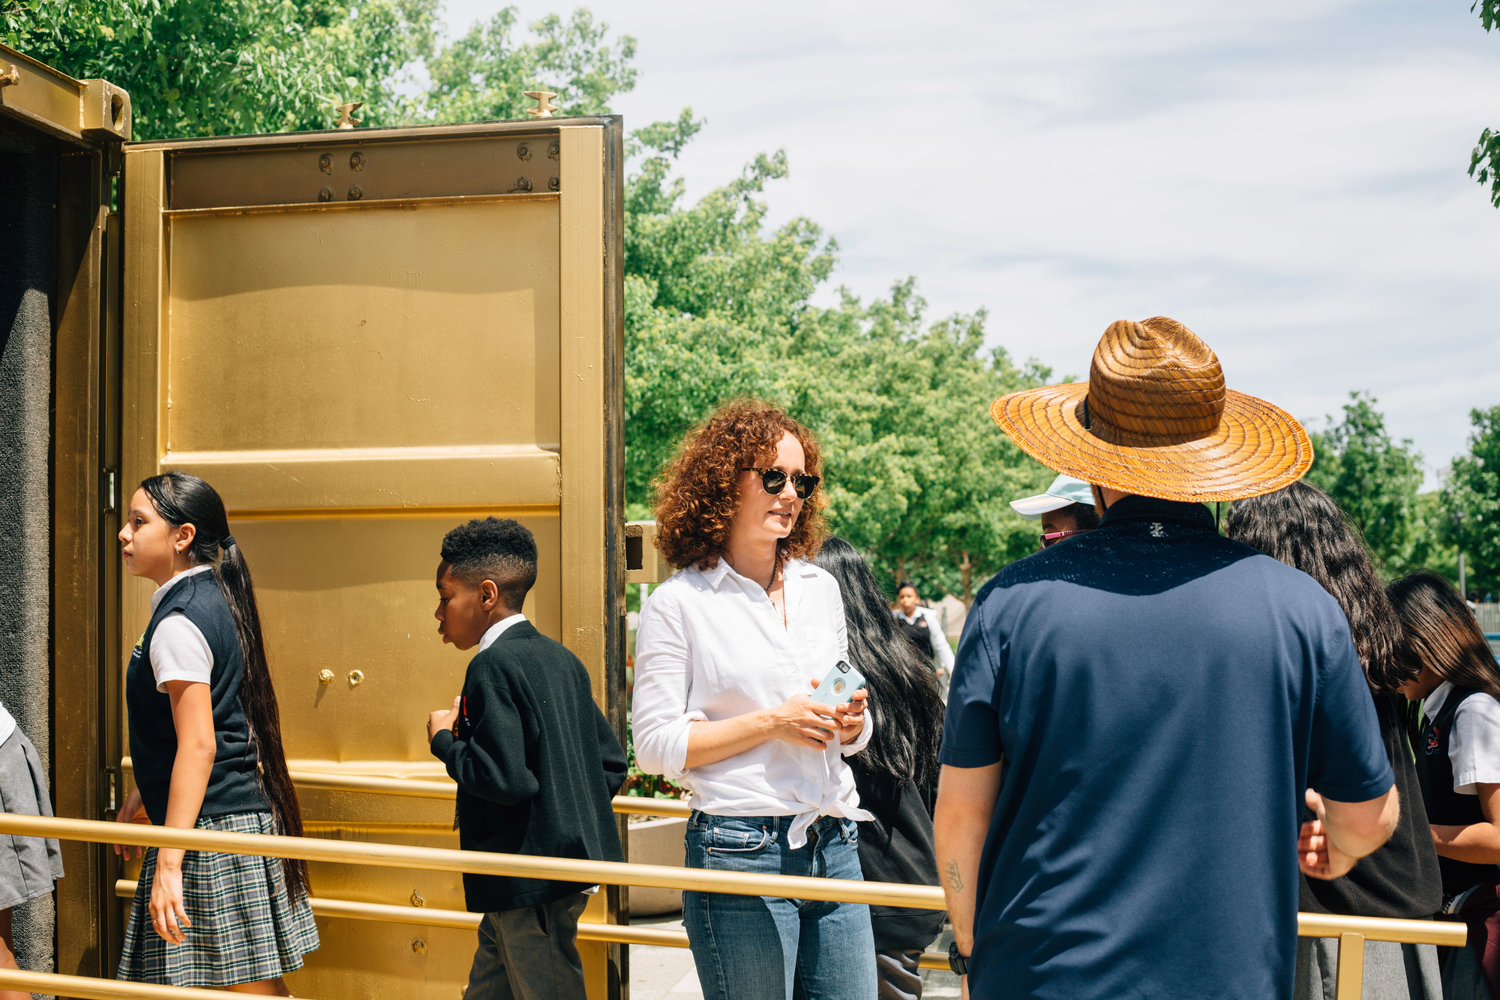 Meet Amy Bean, our Dallas_Curator, as photographed by  Hunter Lacey  from  Dallas Doing Good .